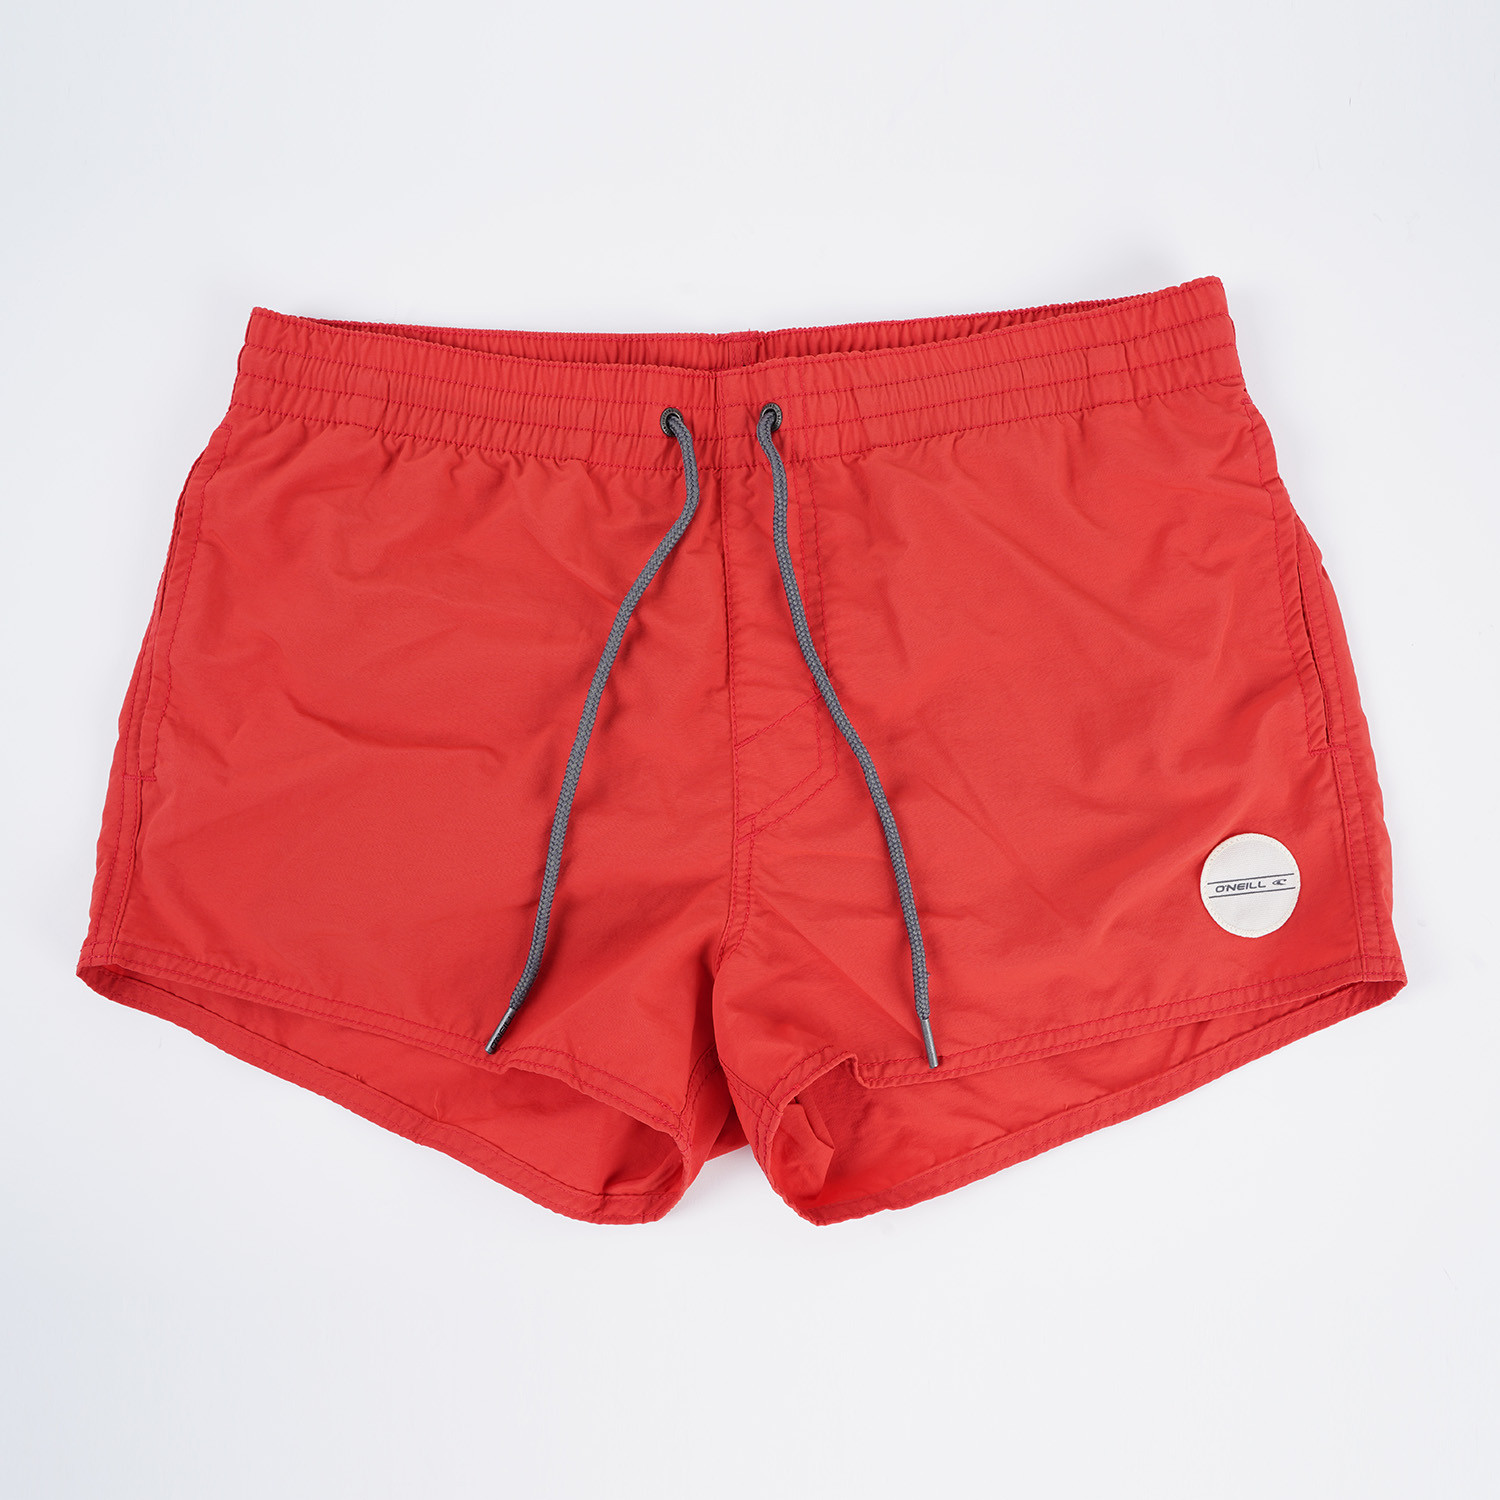 O'Neill Pm Solid Shorts (9000062804_48471)